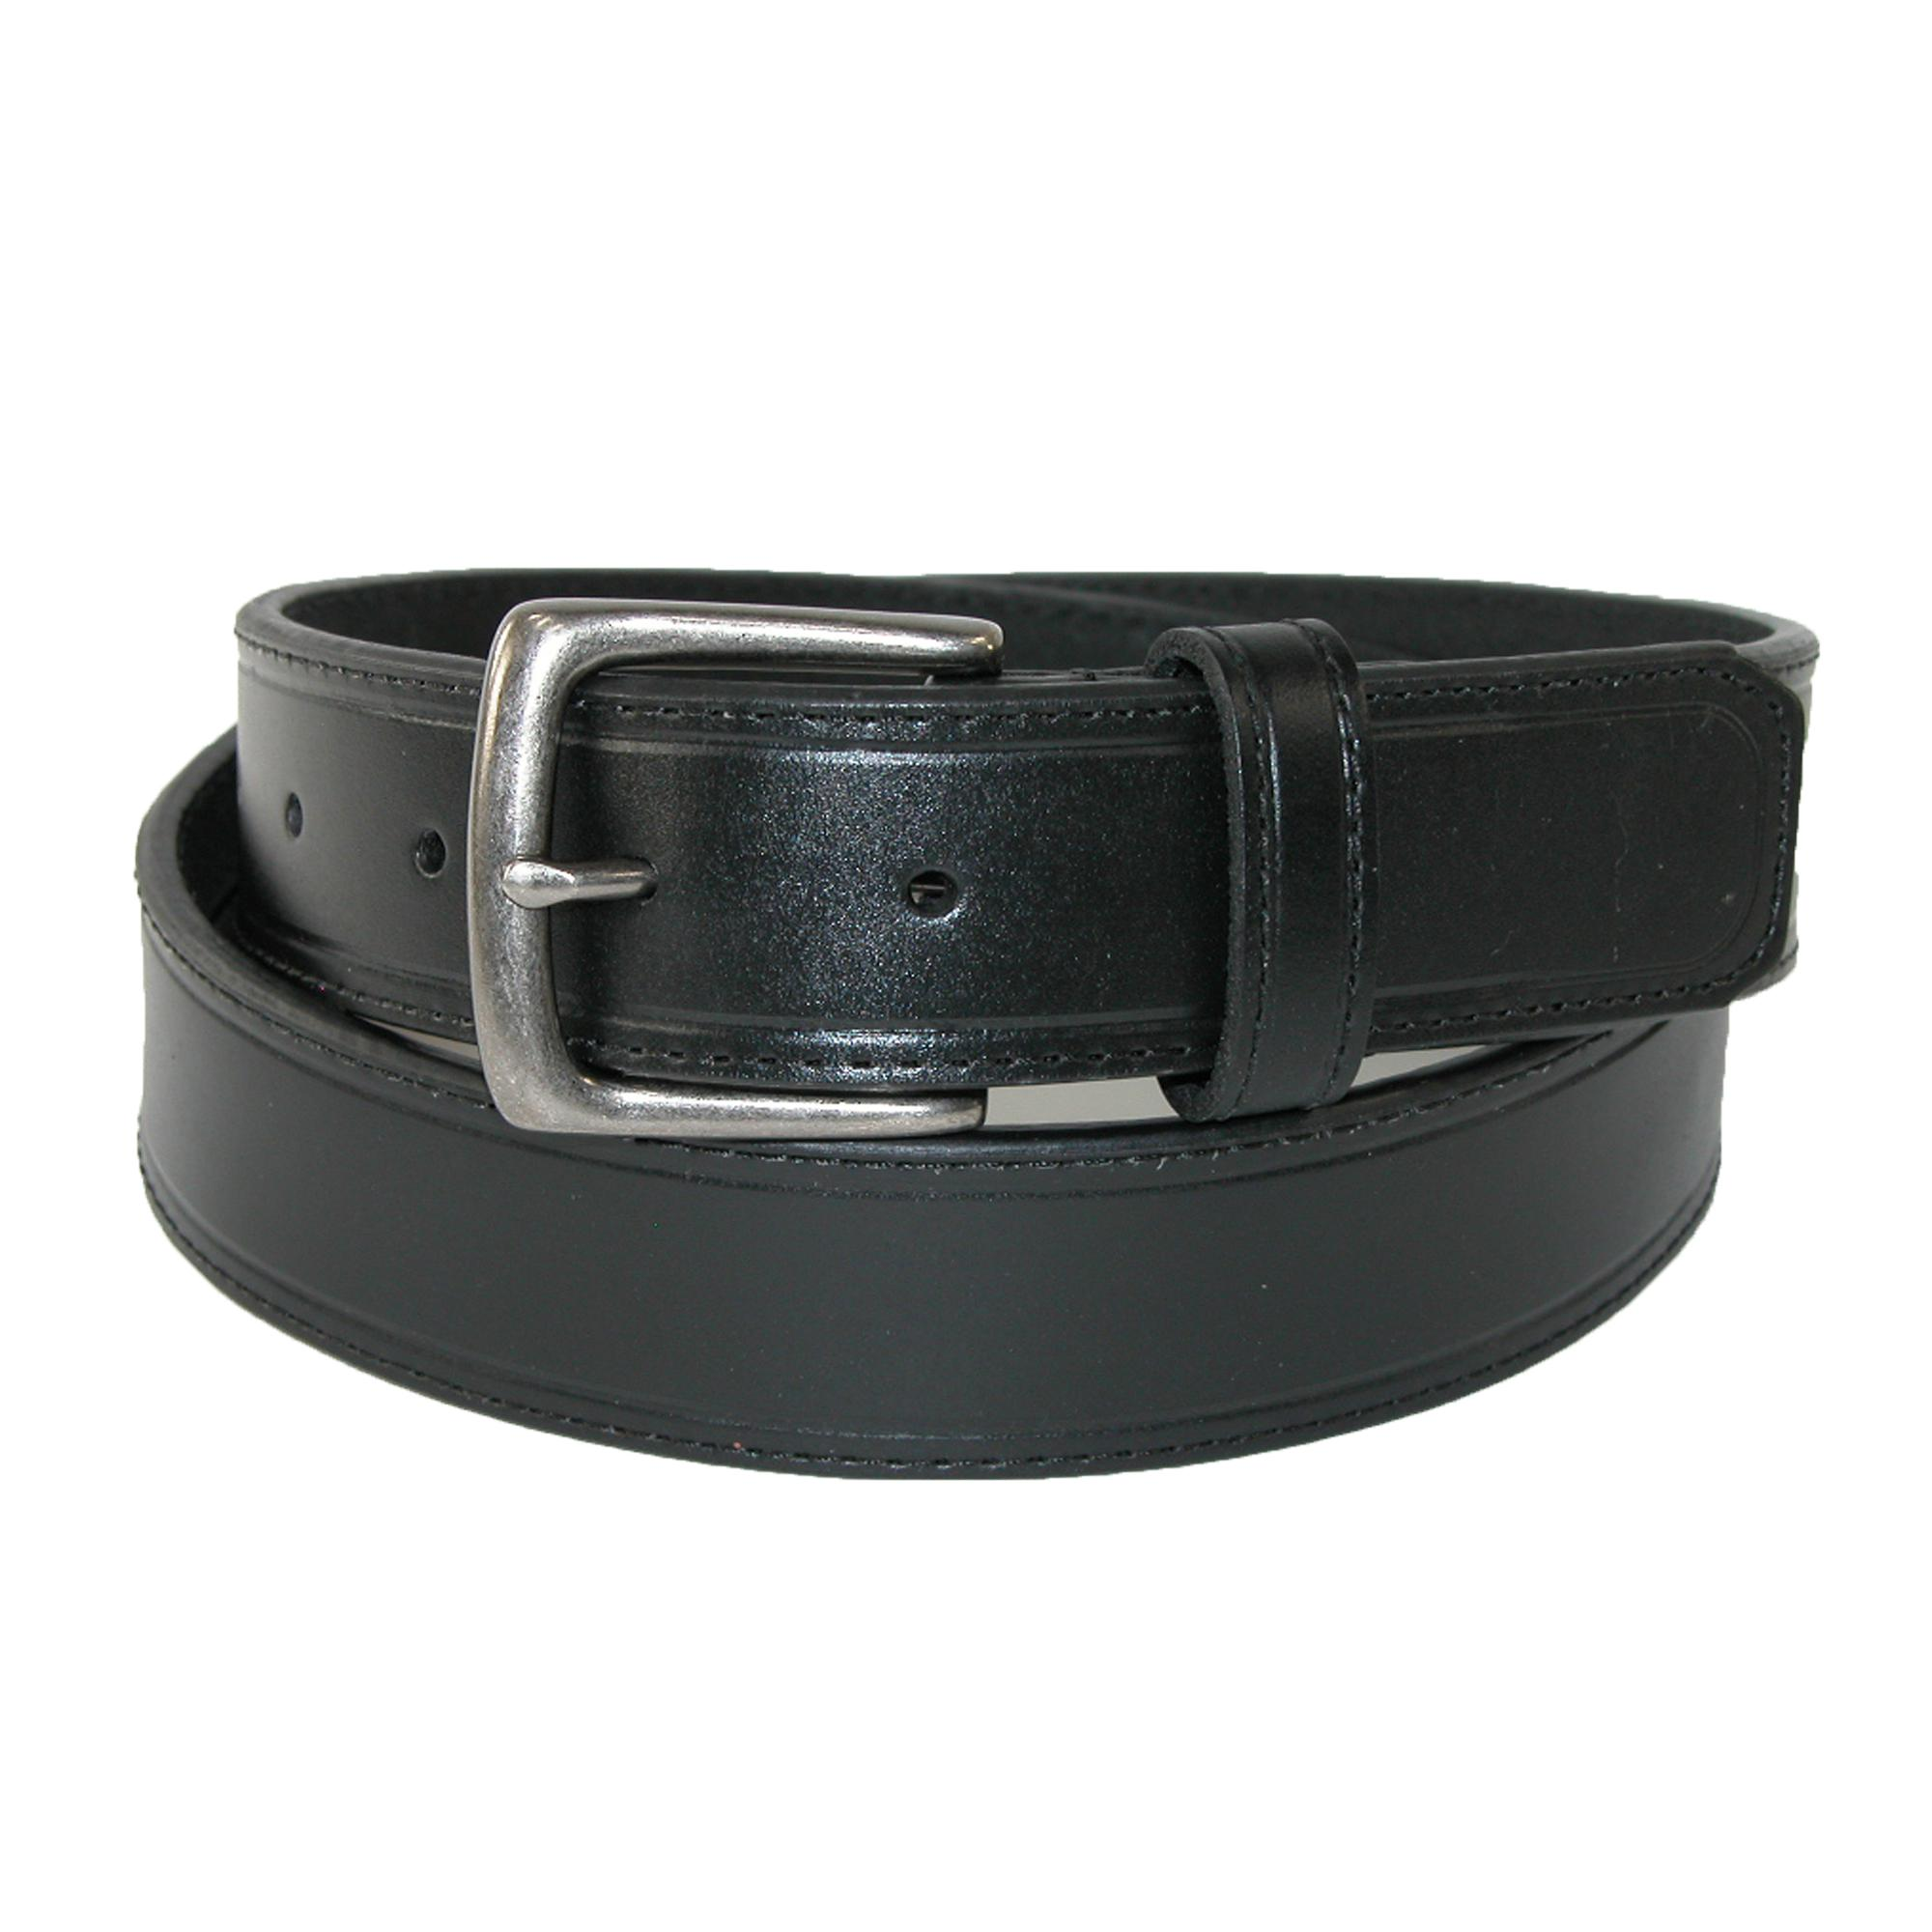 Sharp Mens Leather 1 1/4 Inch Casual Security Money Belt